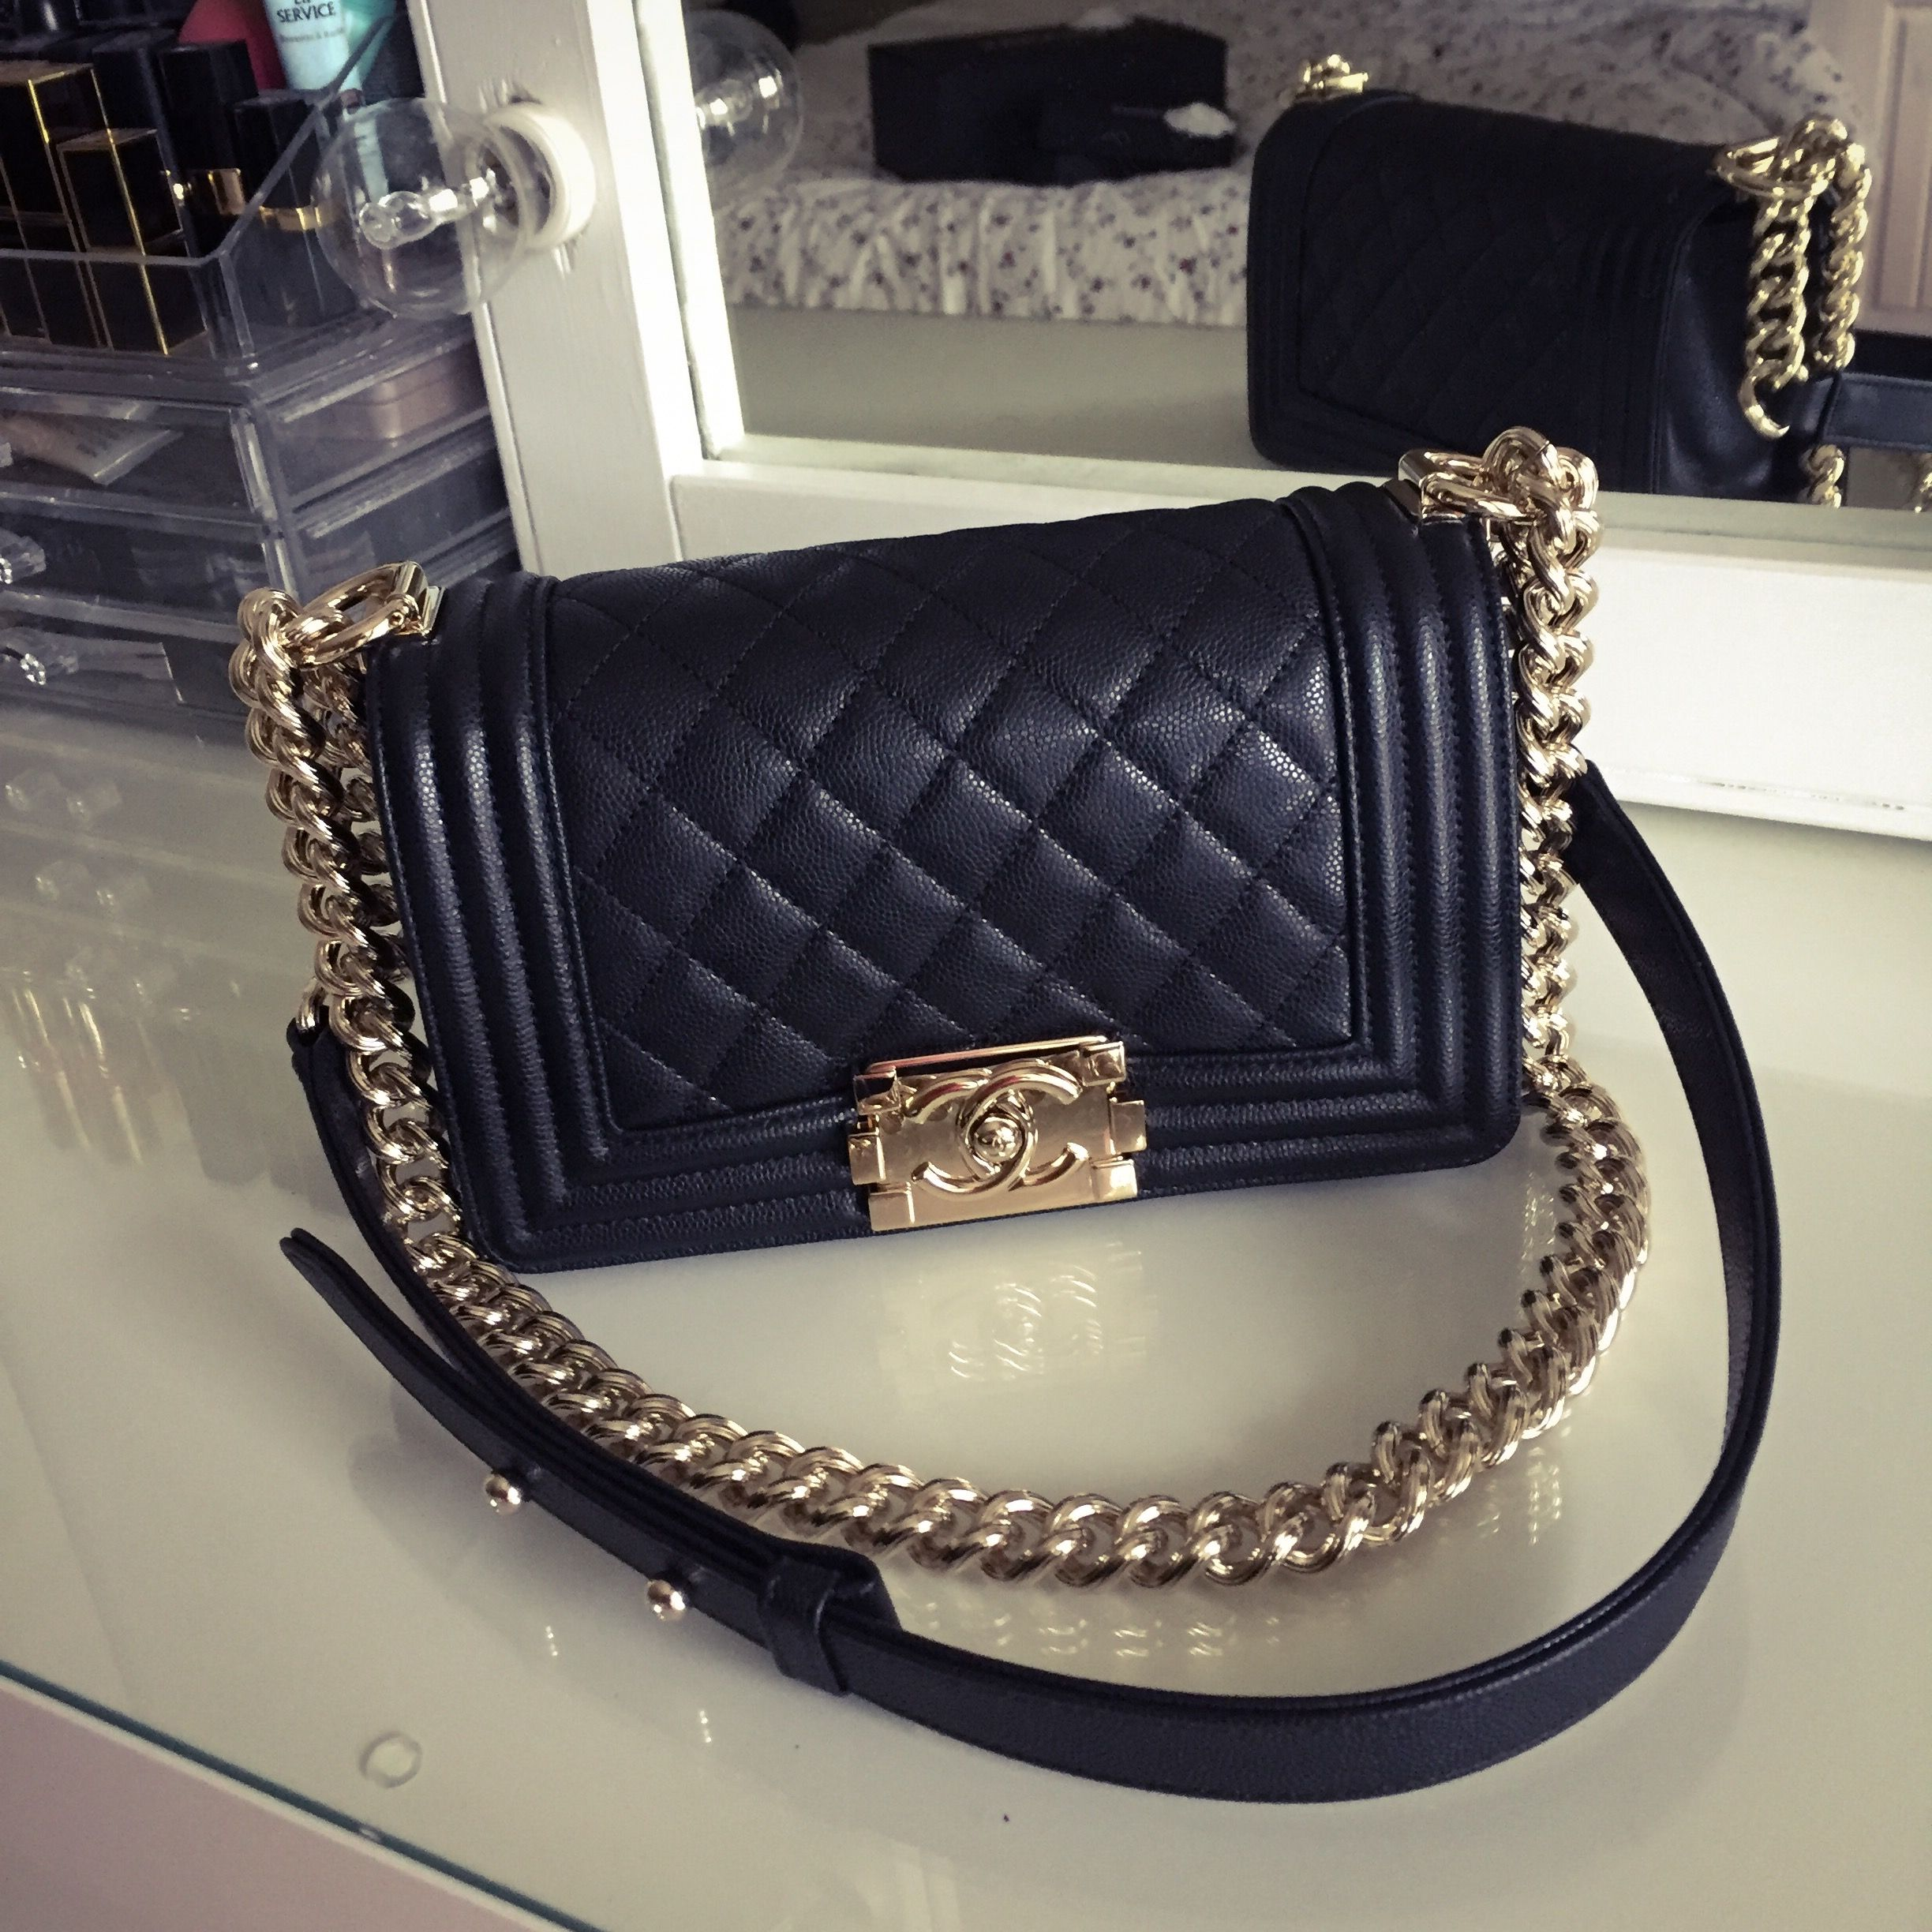 e84548475210 Le Boy Chanel in black caviar with shiny gold hardware